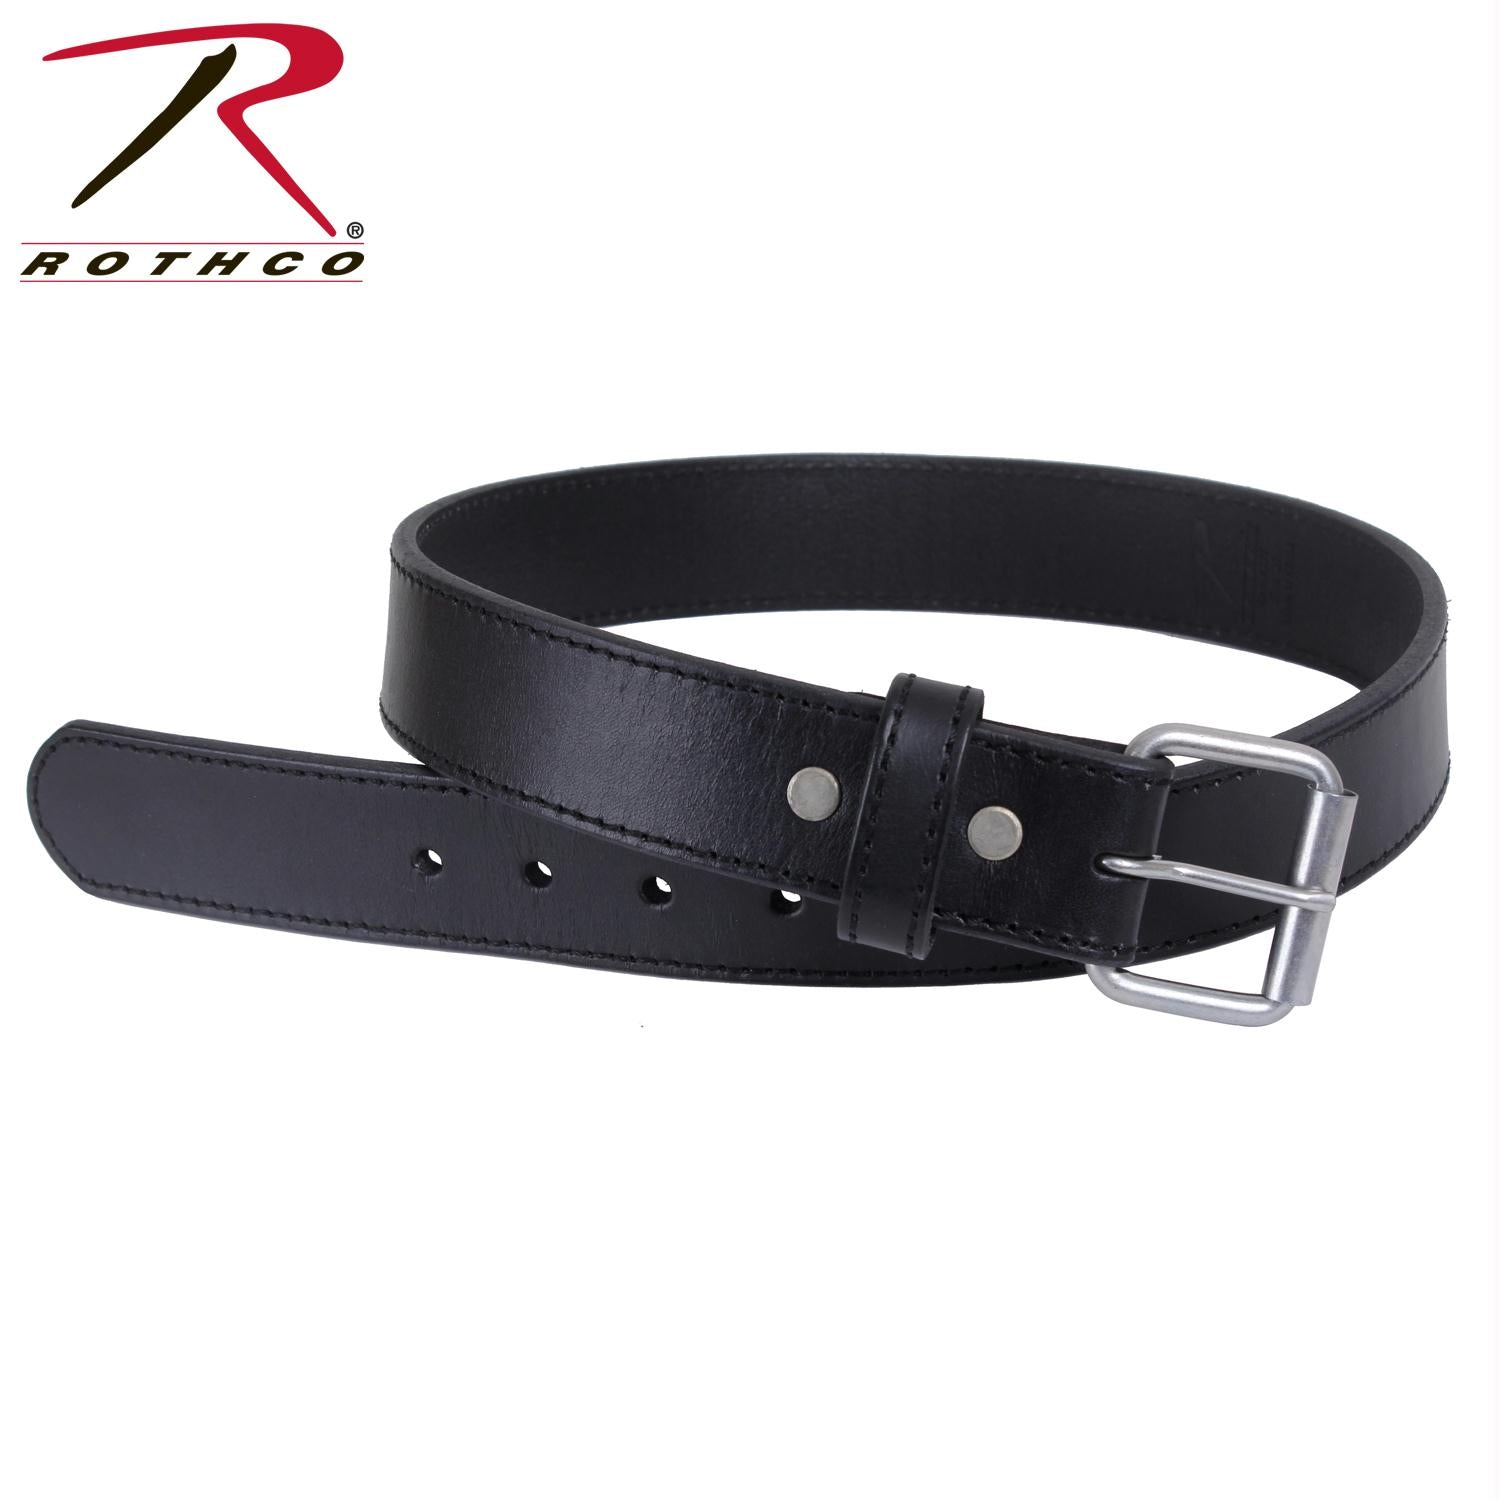 Rothco Heavyweight Concealed Carry Leather Belt